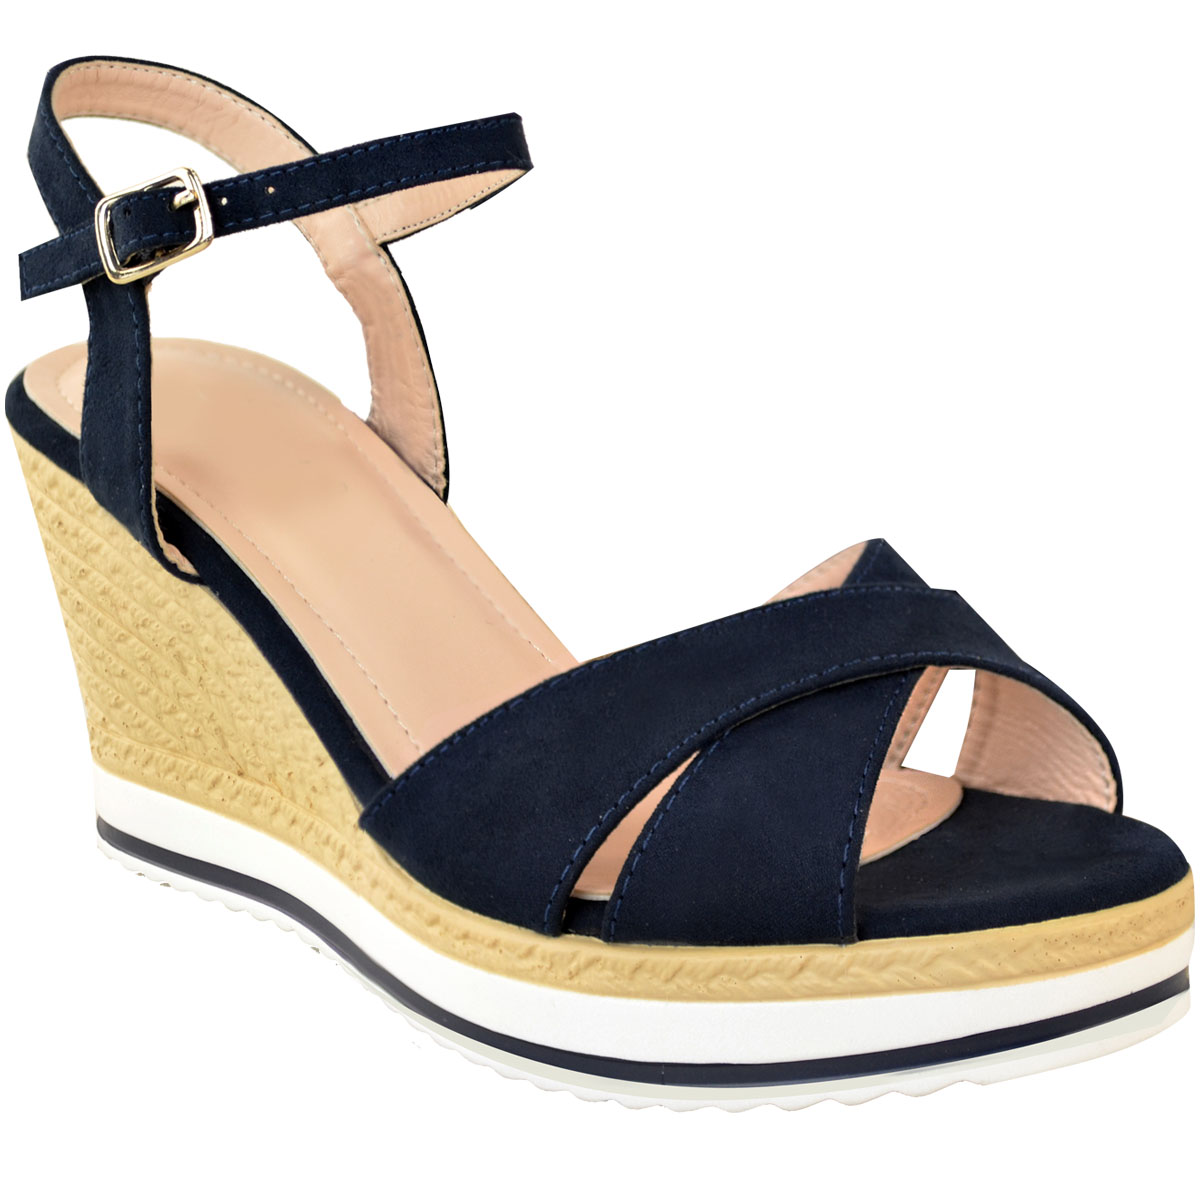 Details about New Womens Ladies Low Wedge Heel Summer Sandals Open Toe Comfort Casual Size